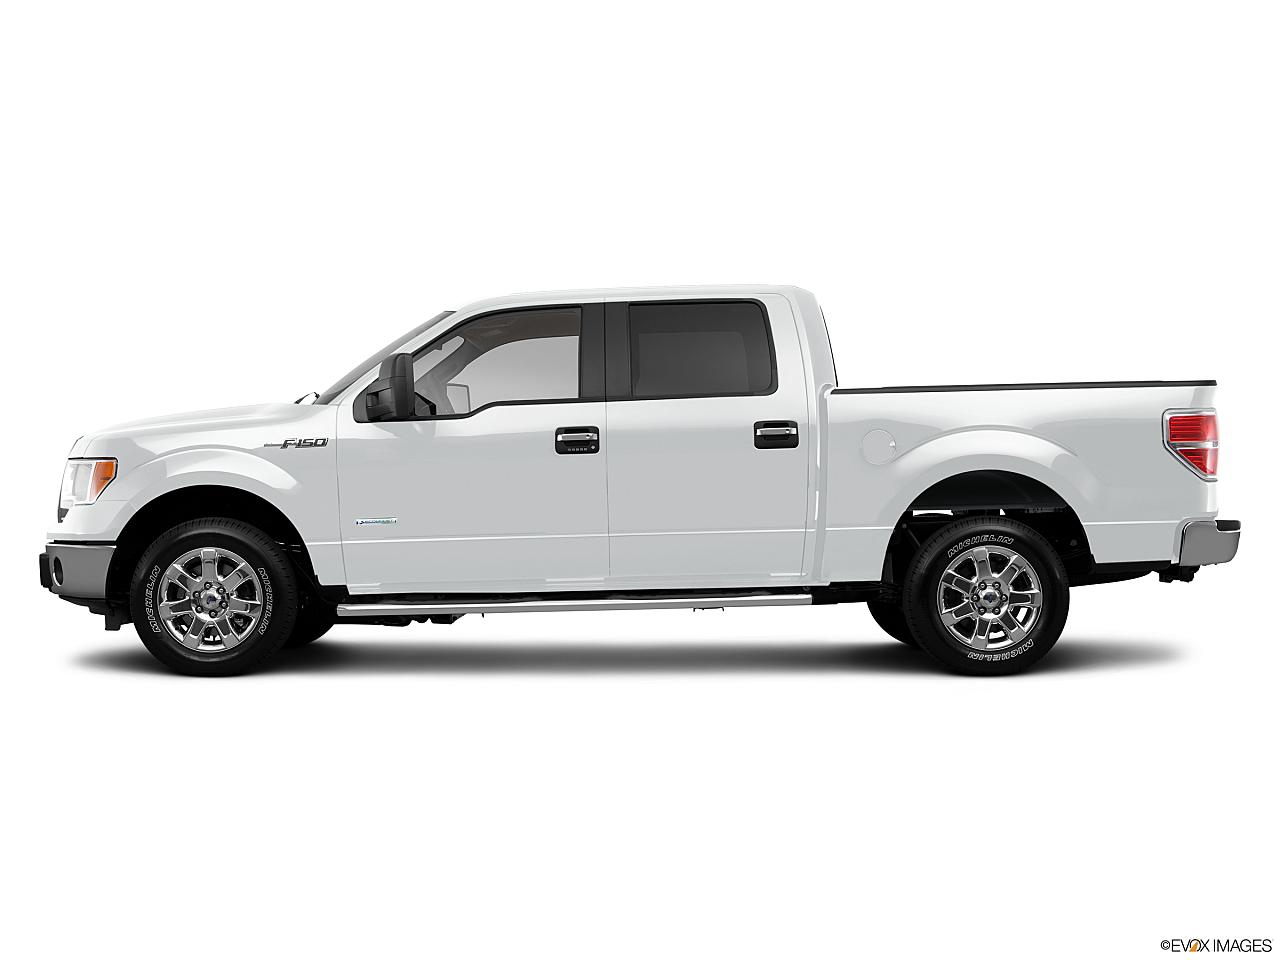 Ford F150 For Sale In Nc >> 2013 Ford F-150 at Patterson Auto Sales, Inc of Wilmington, NC - Research - GrooveCar